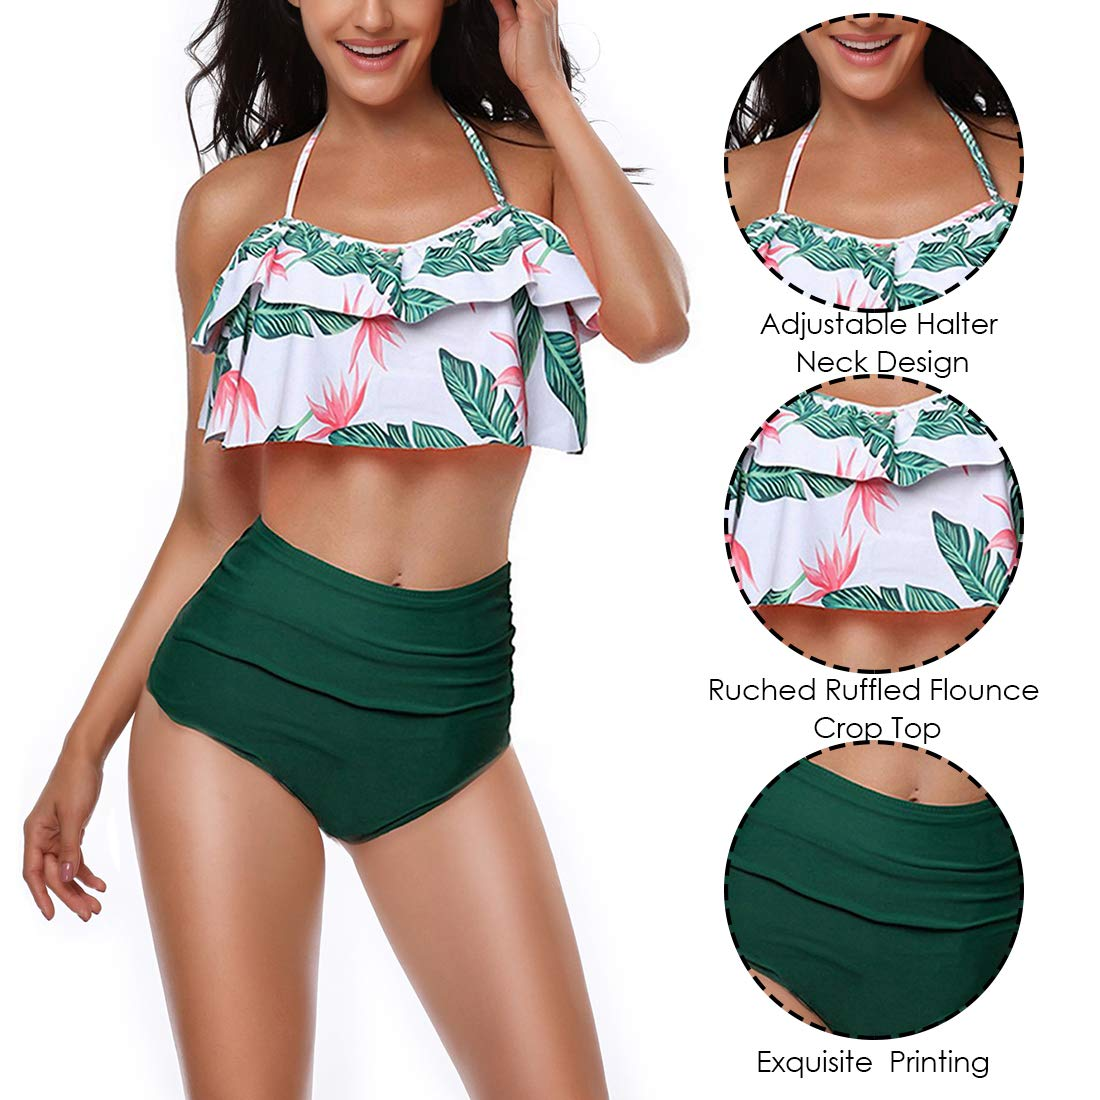 7a5590dc5b Amazon.com: papasgix Womens Two Pieces Swimwear Retro Ruffle Flounce High  Waisted Bikini Set Halter Neck Bathing Suit: Clothing